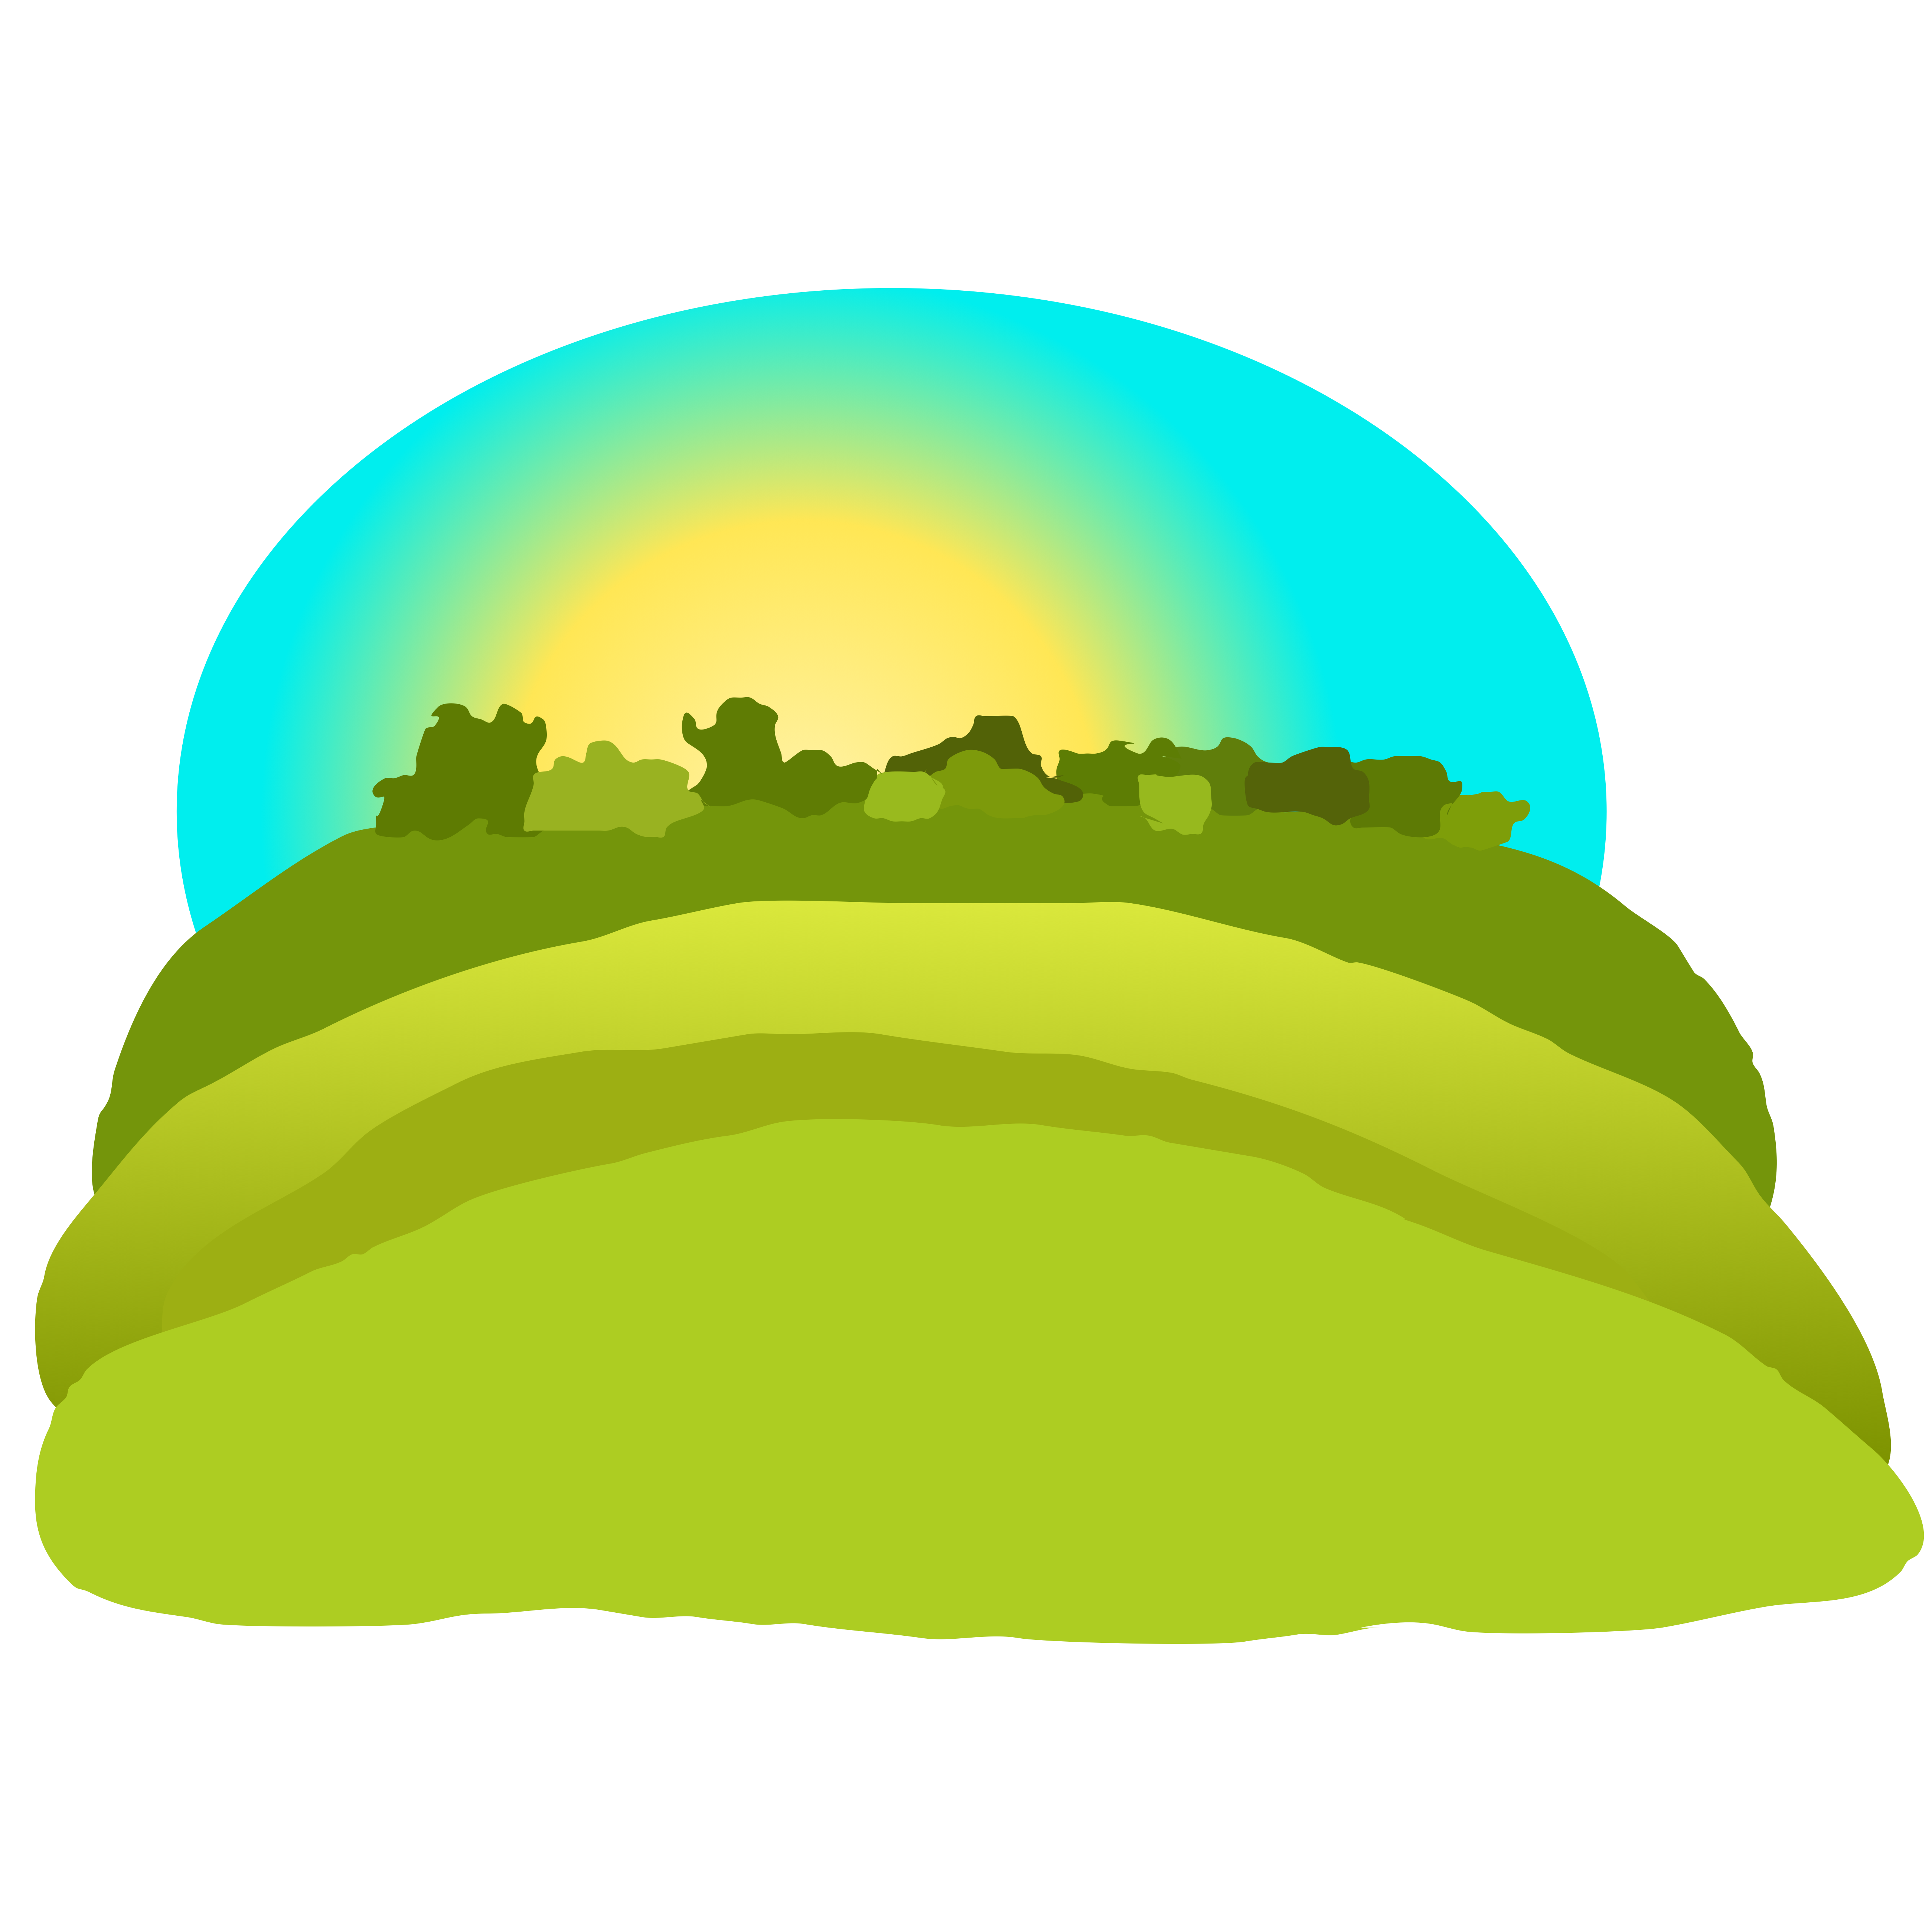 Free images at clker. Hills clipart distant